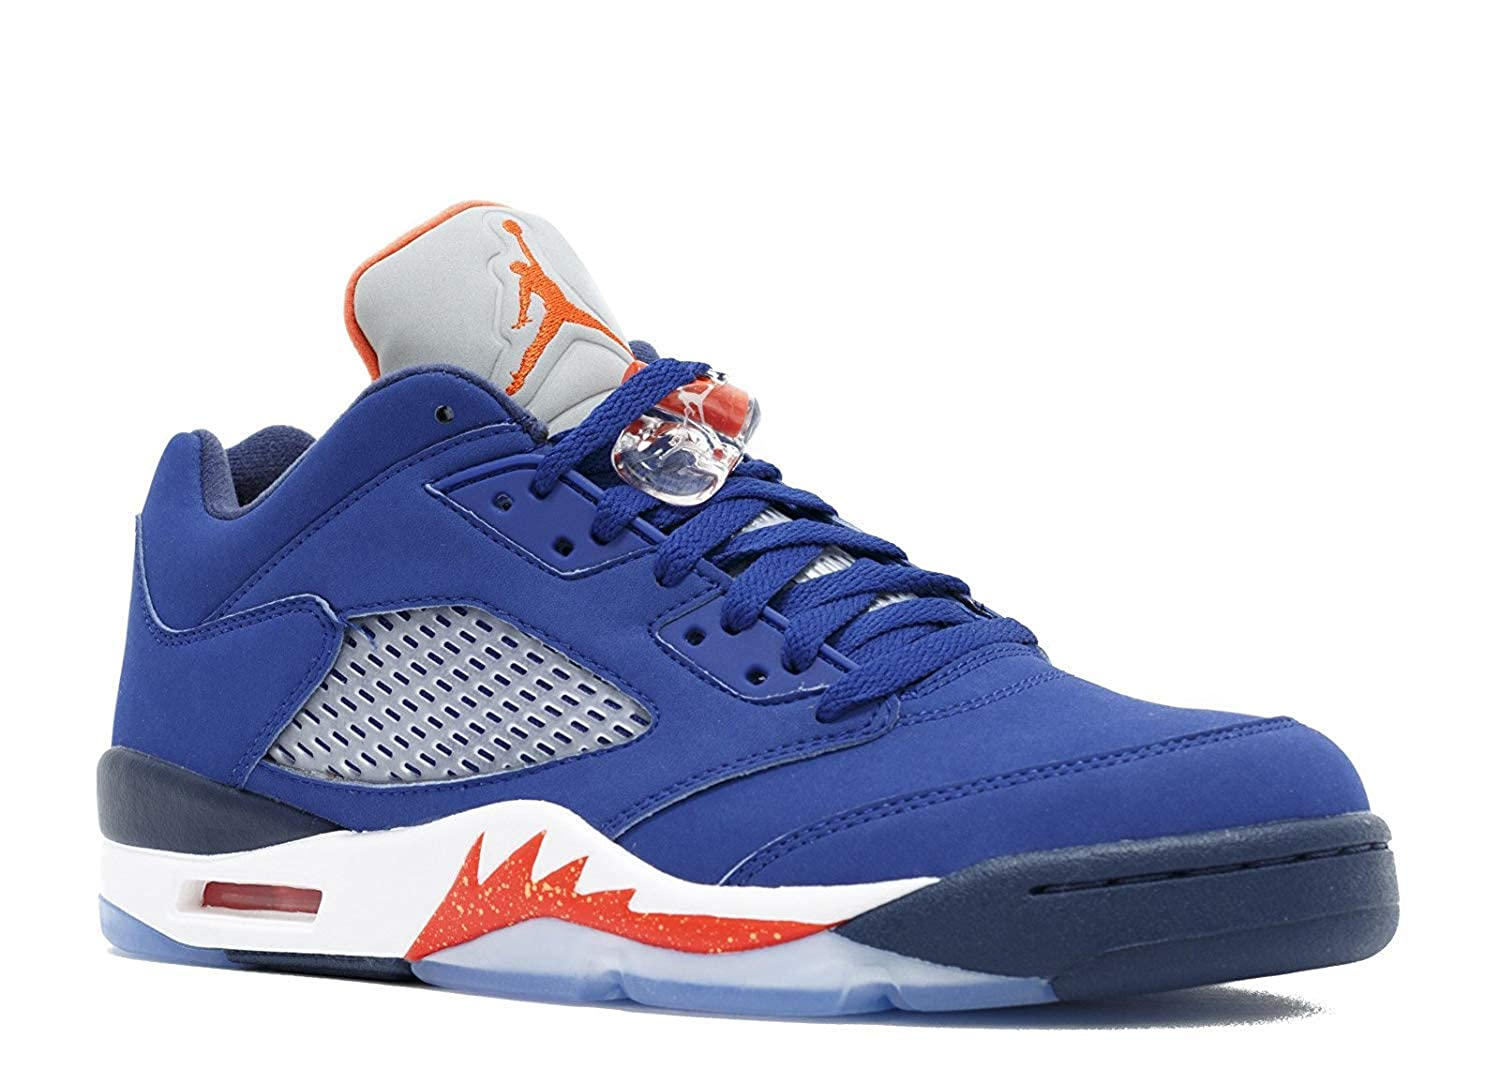 best service f87aa c843b Mens Nike Air Jordan 5 Retro Low Basketball Shoes Royal Blue 819171-417 (11)